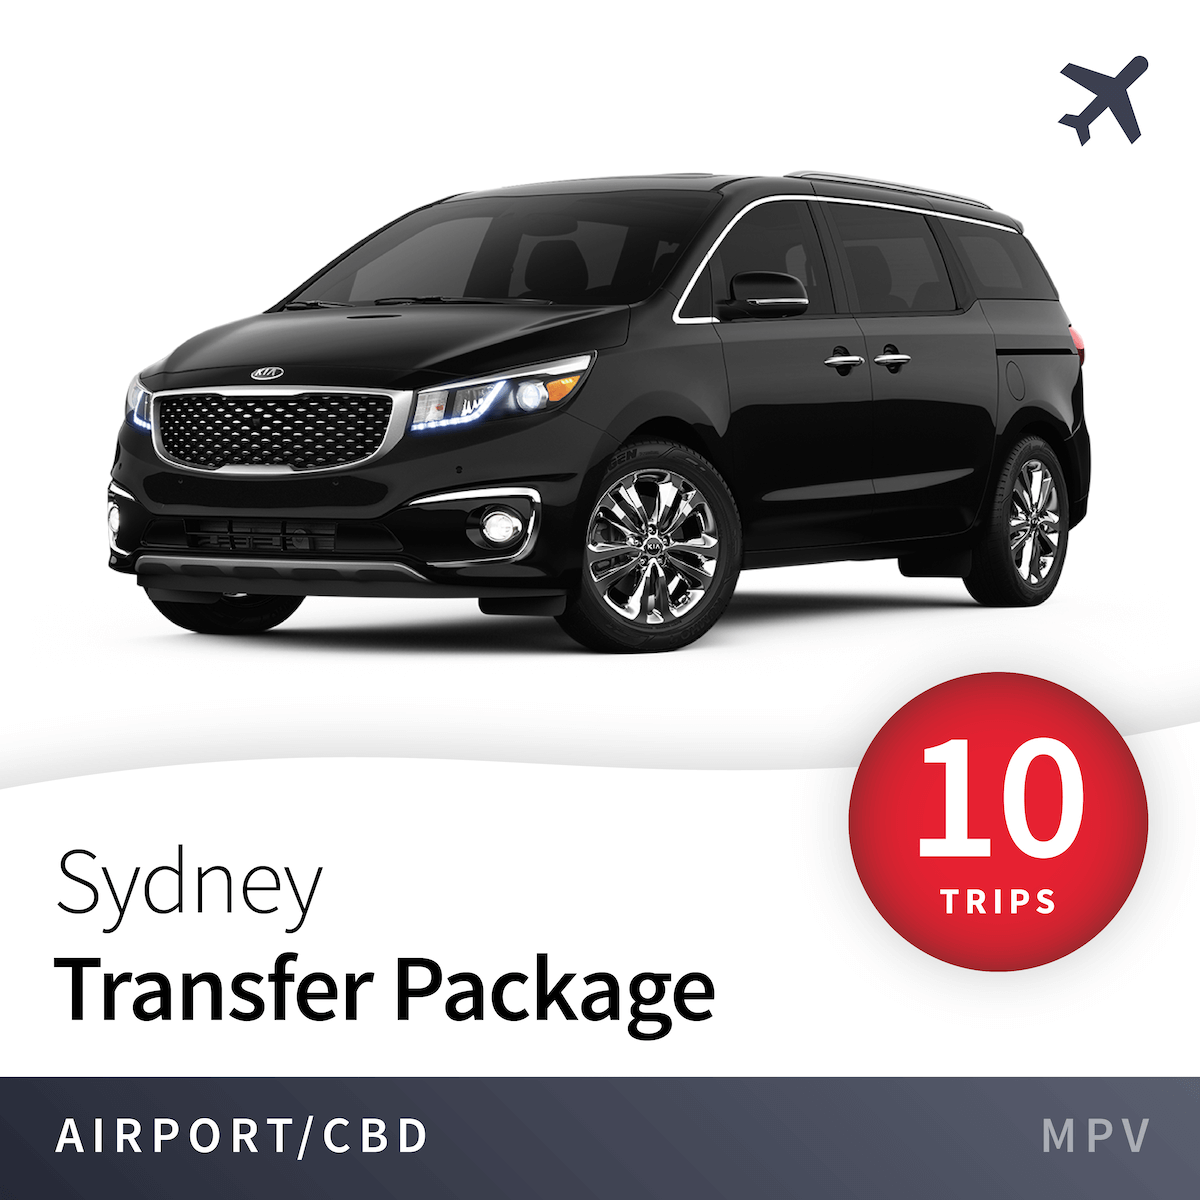 Sydney Airport Transfer Package - MPV (10 Trips) 7